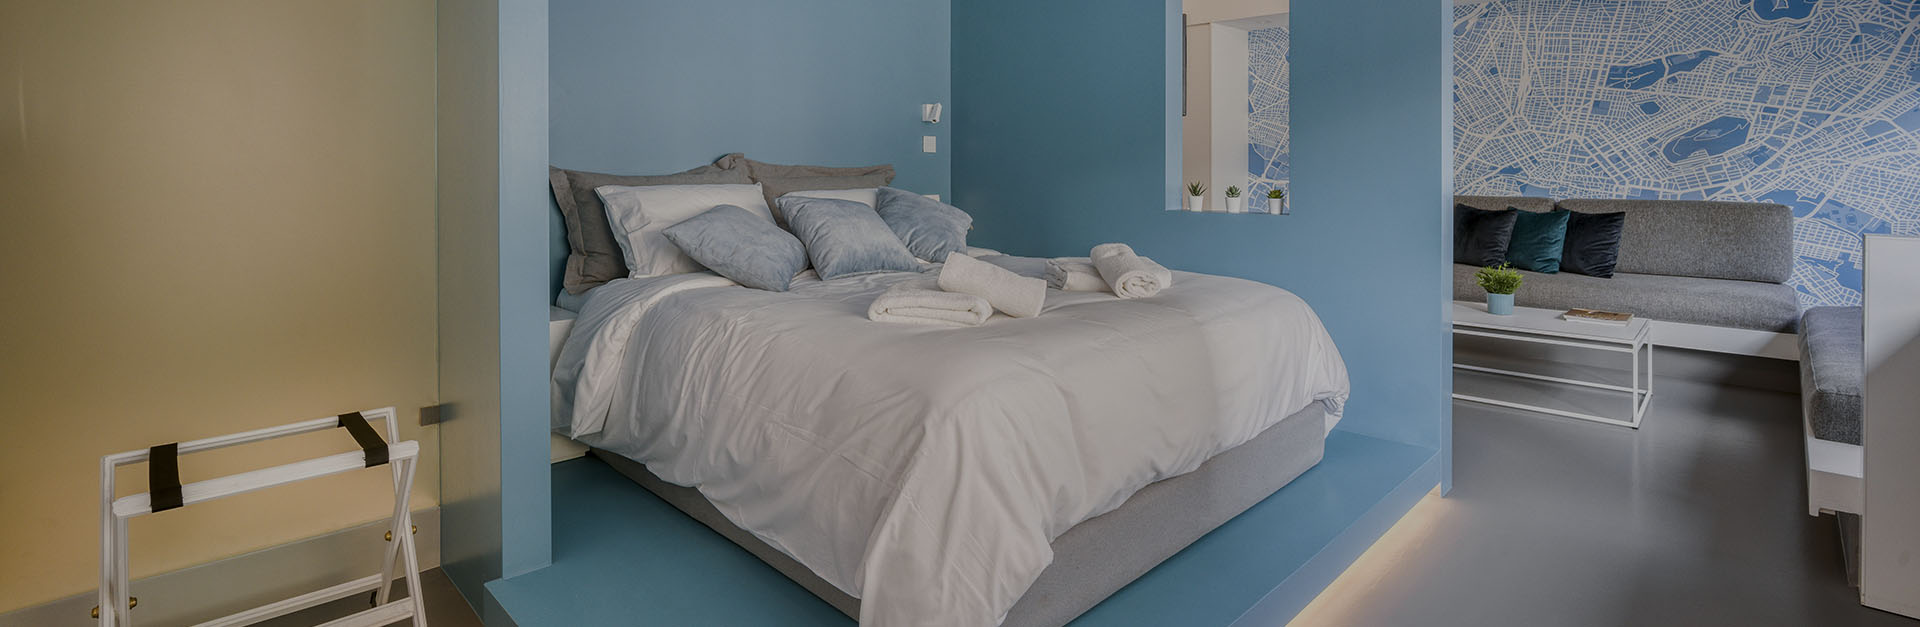 accommodation in athens - Athens Color Cube Luxury Apartments